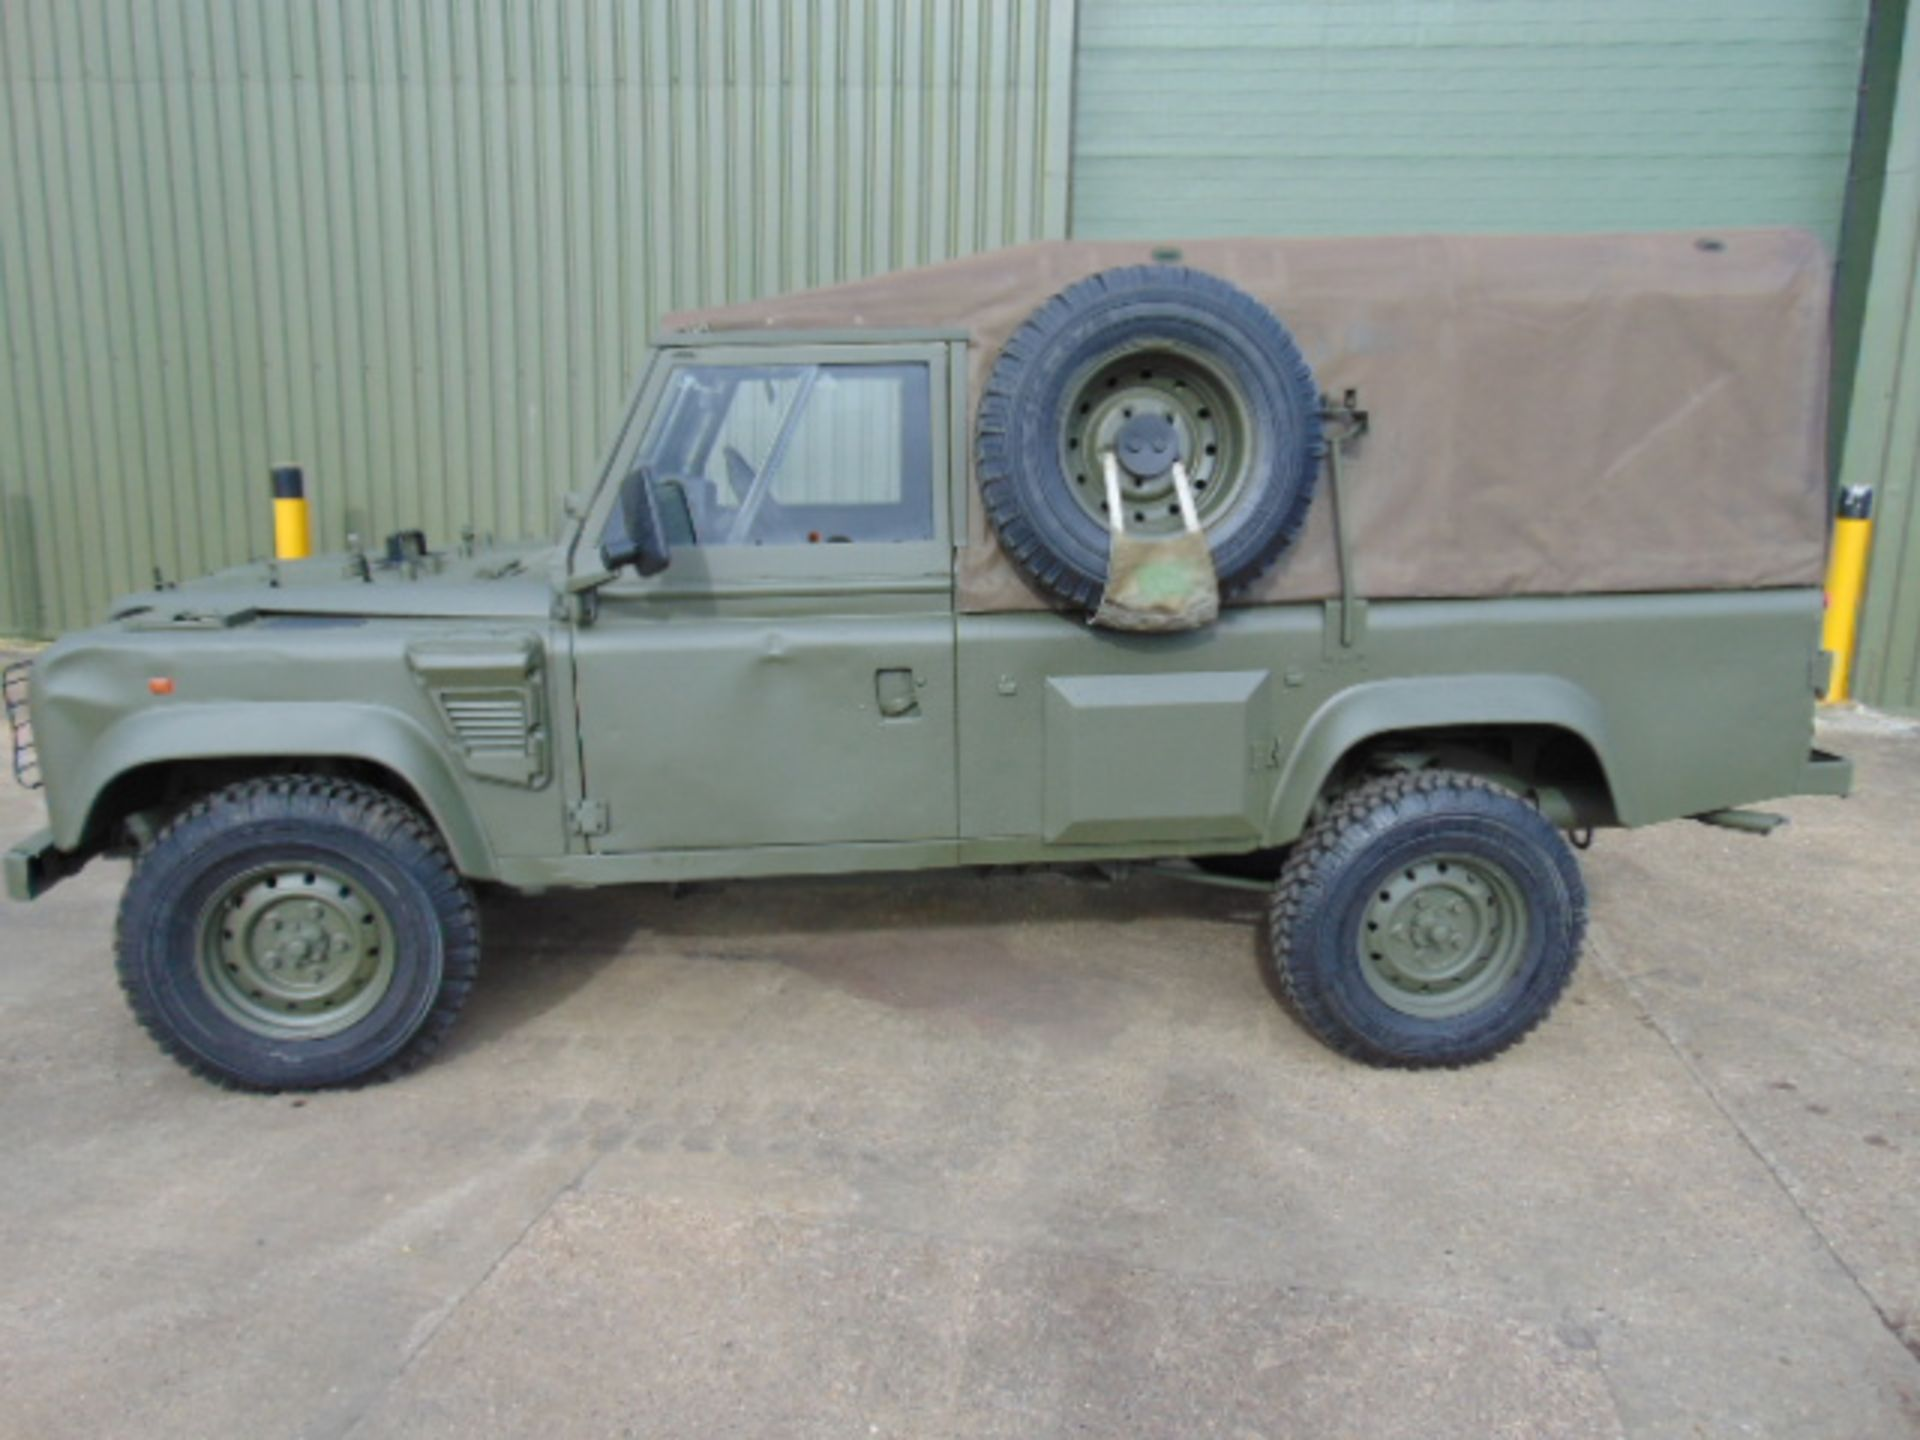 Lot 25857 - Land Rover Wolf 110 Soft Top